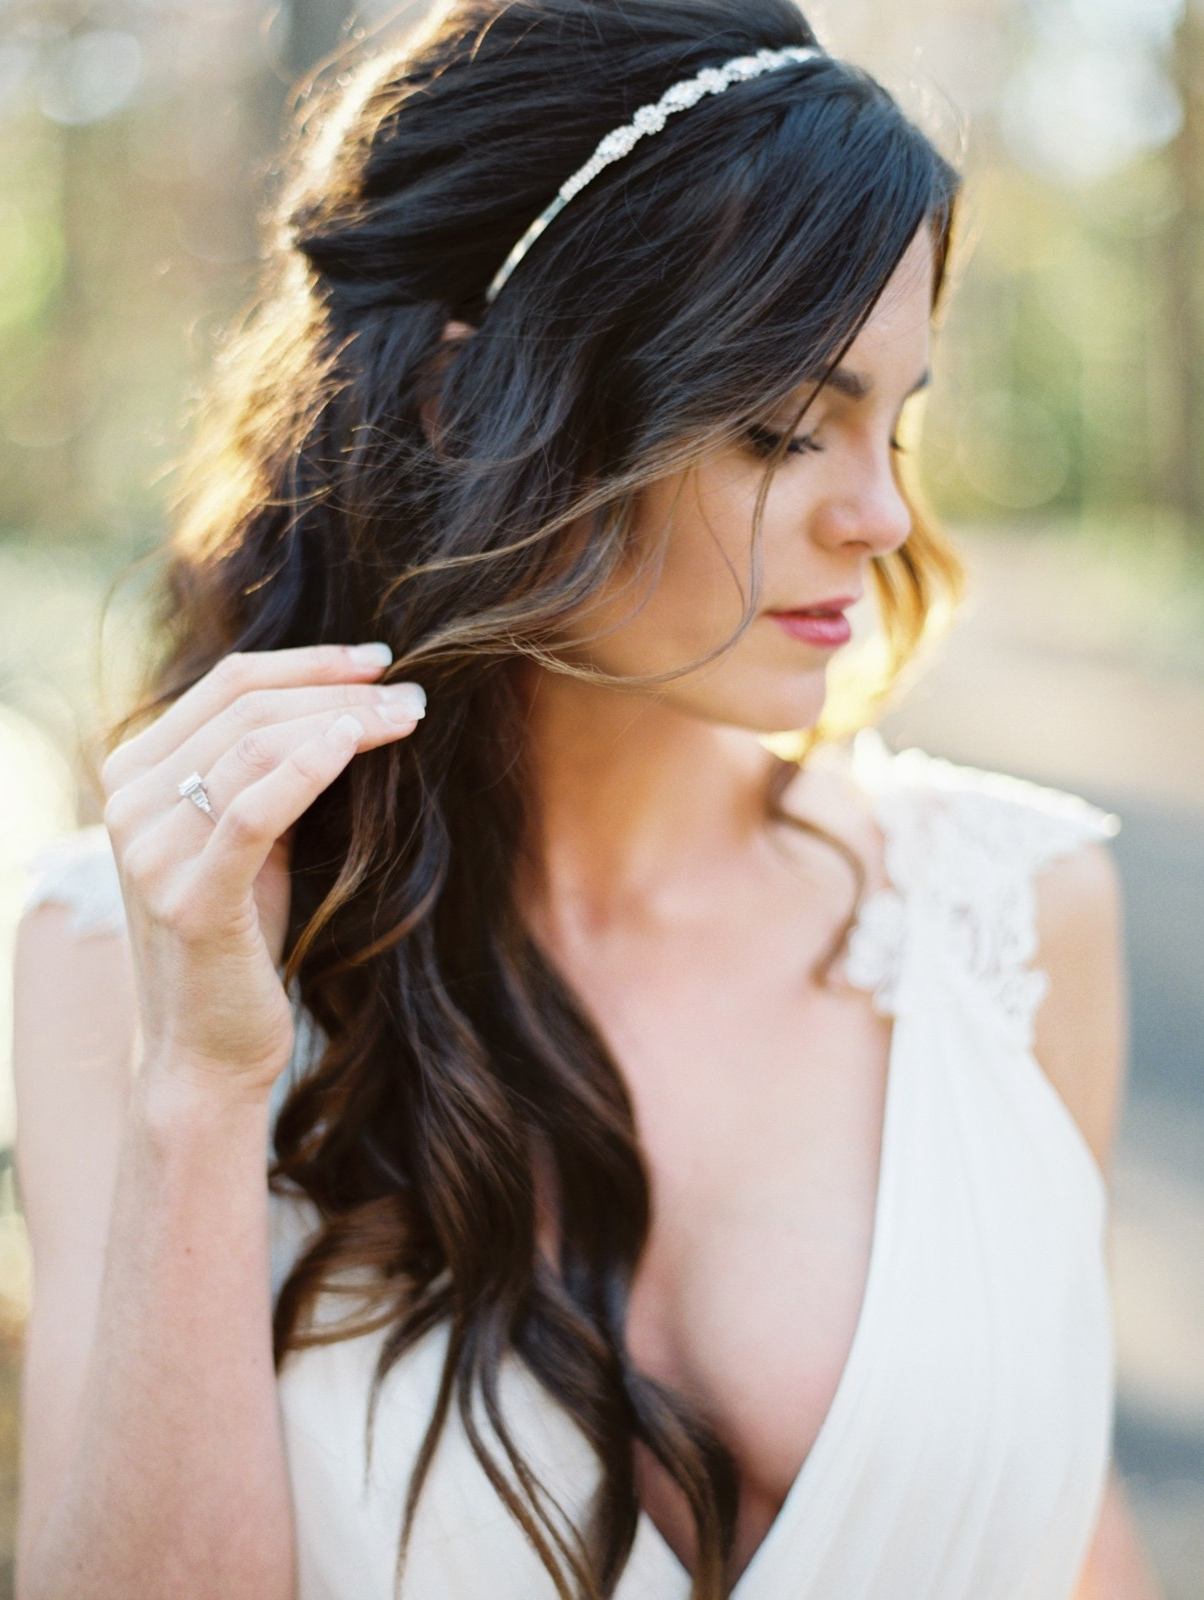 Brides With Regard To Favorite Modern Wedding Hairstyles For Bridesmaids (View 2 of 15)